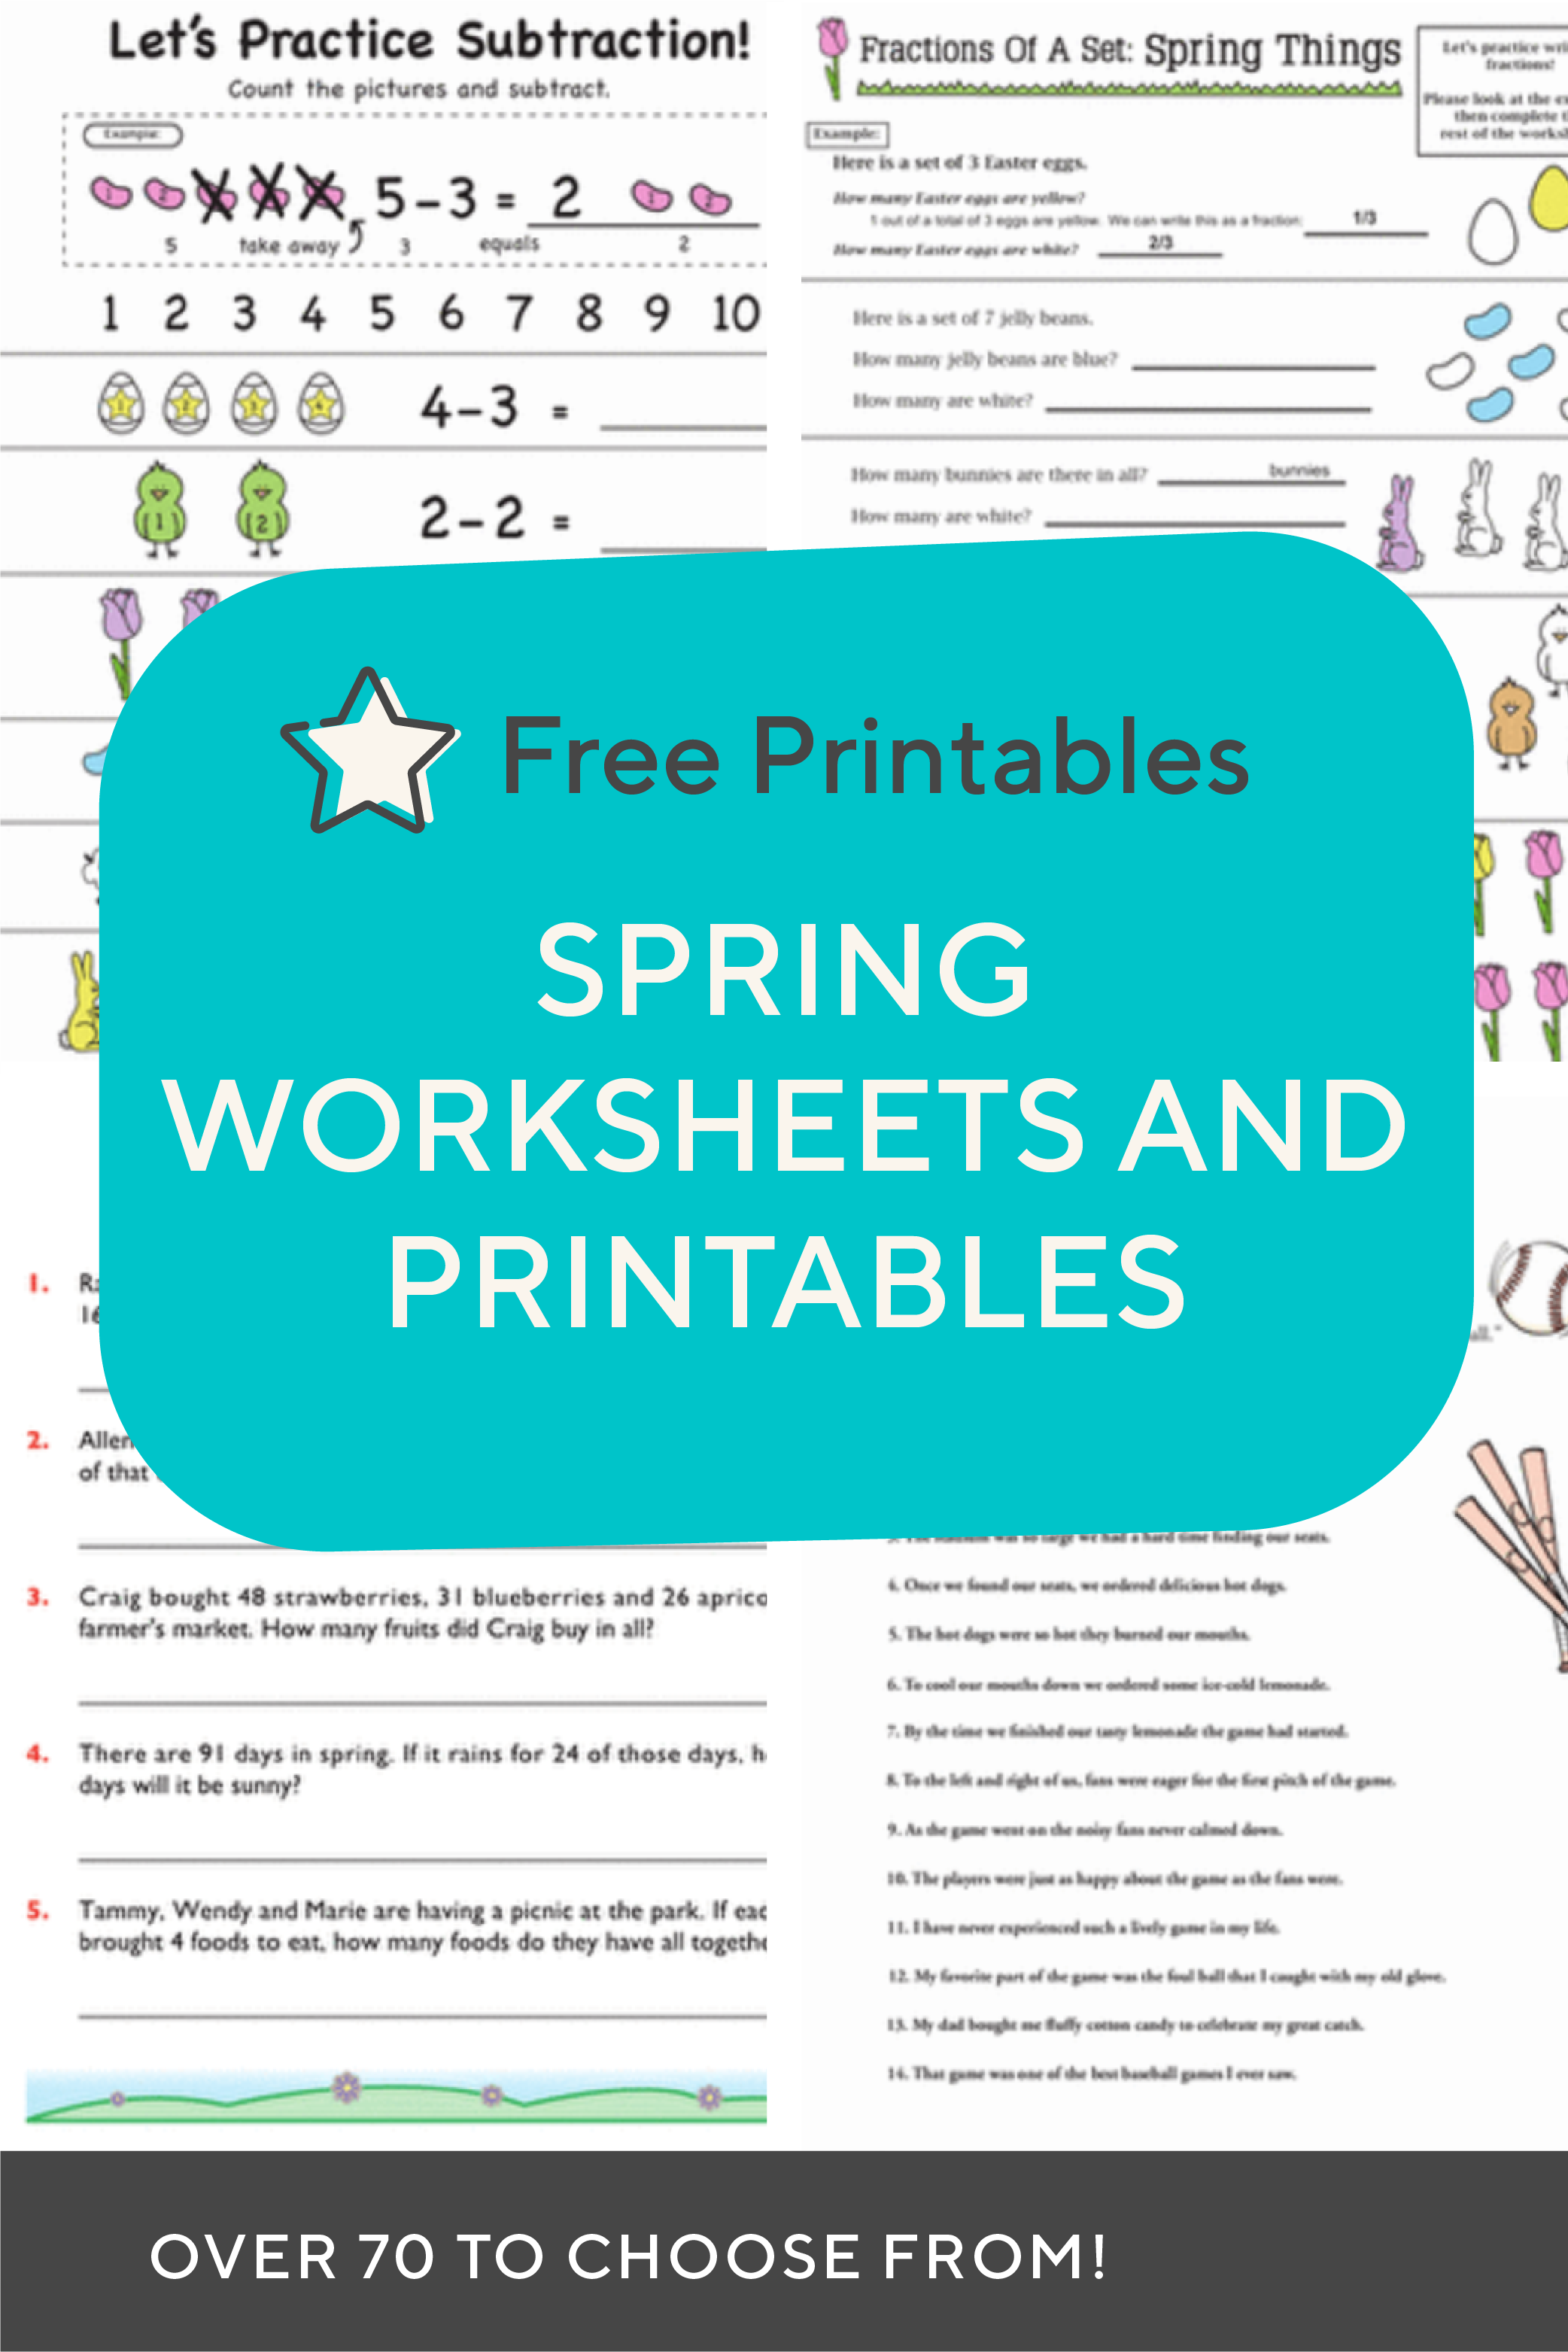 Download These Free Spring Themed Printables And